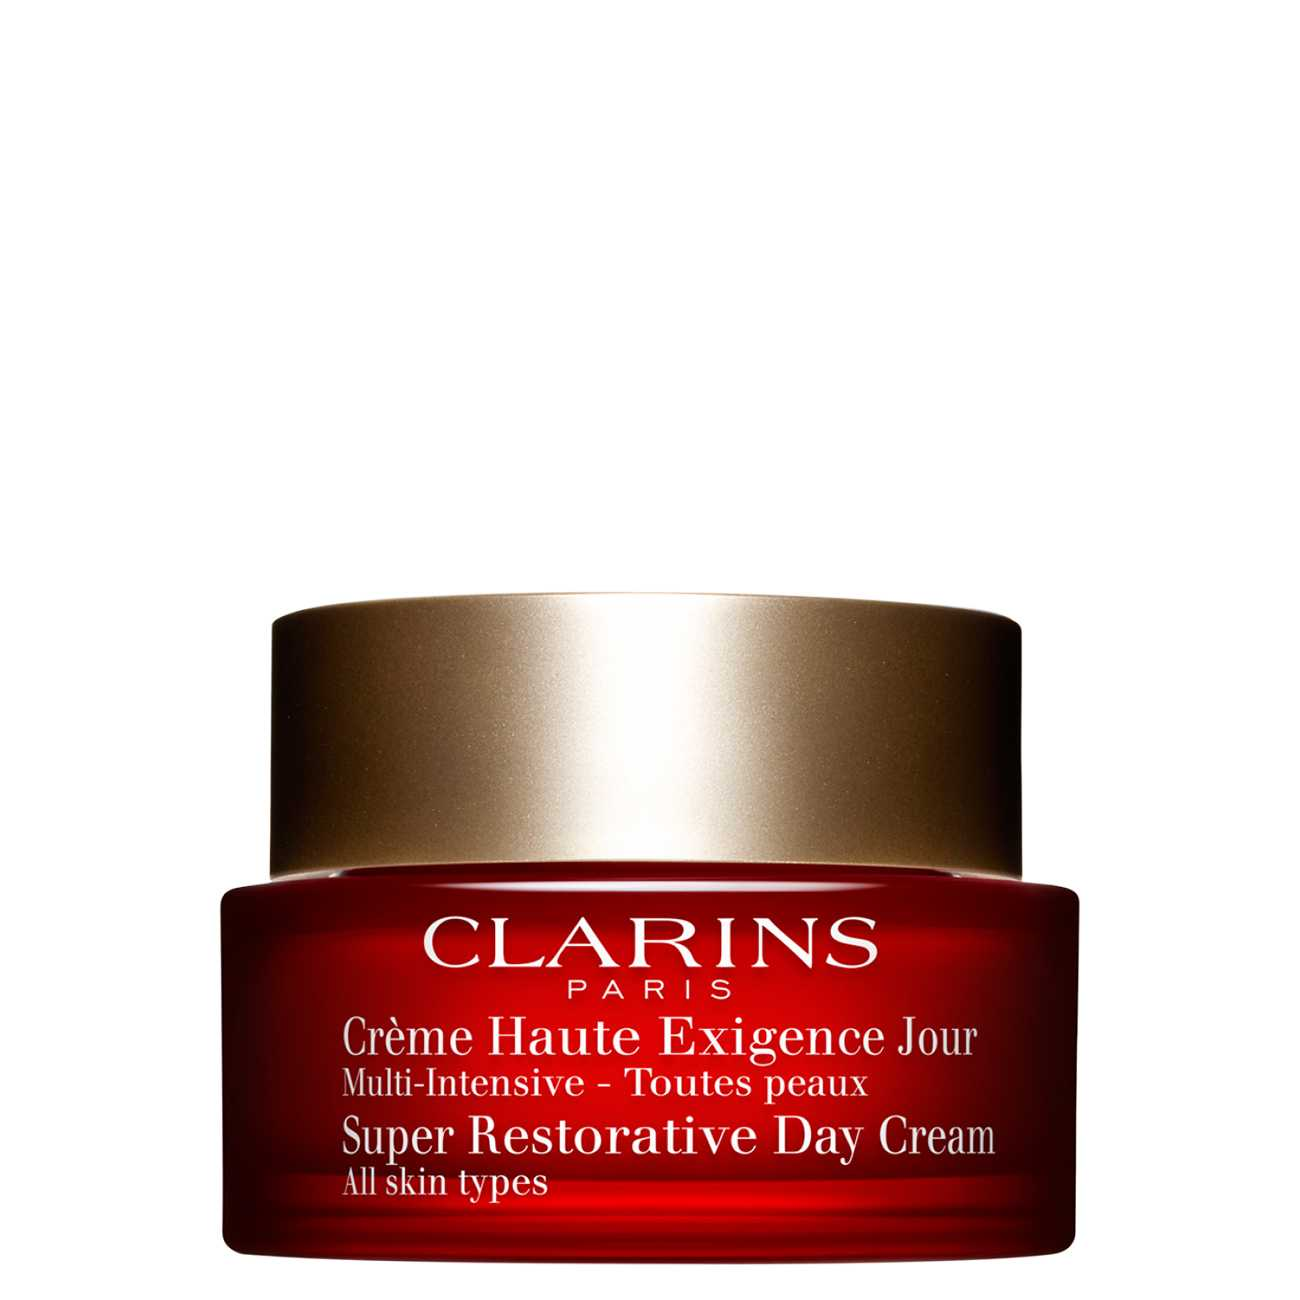 SUPER RESTORATIVE DAY CREAM 50 ML